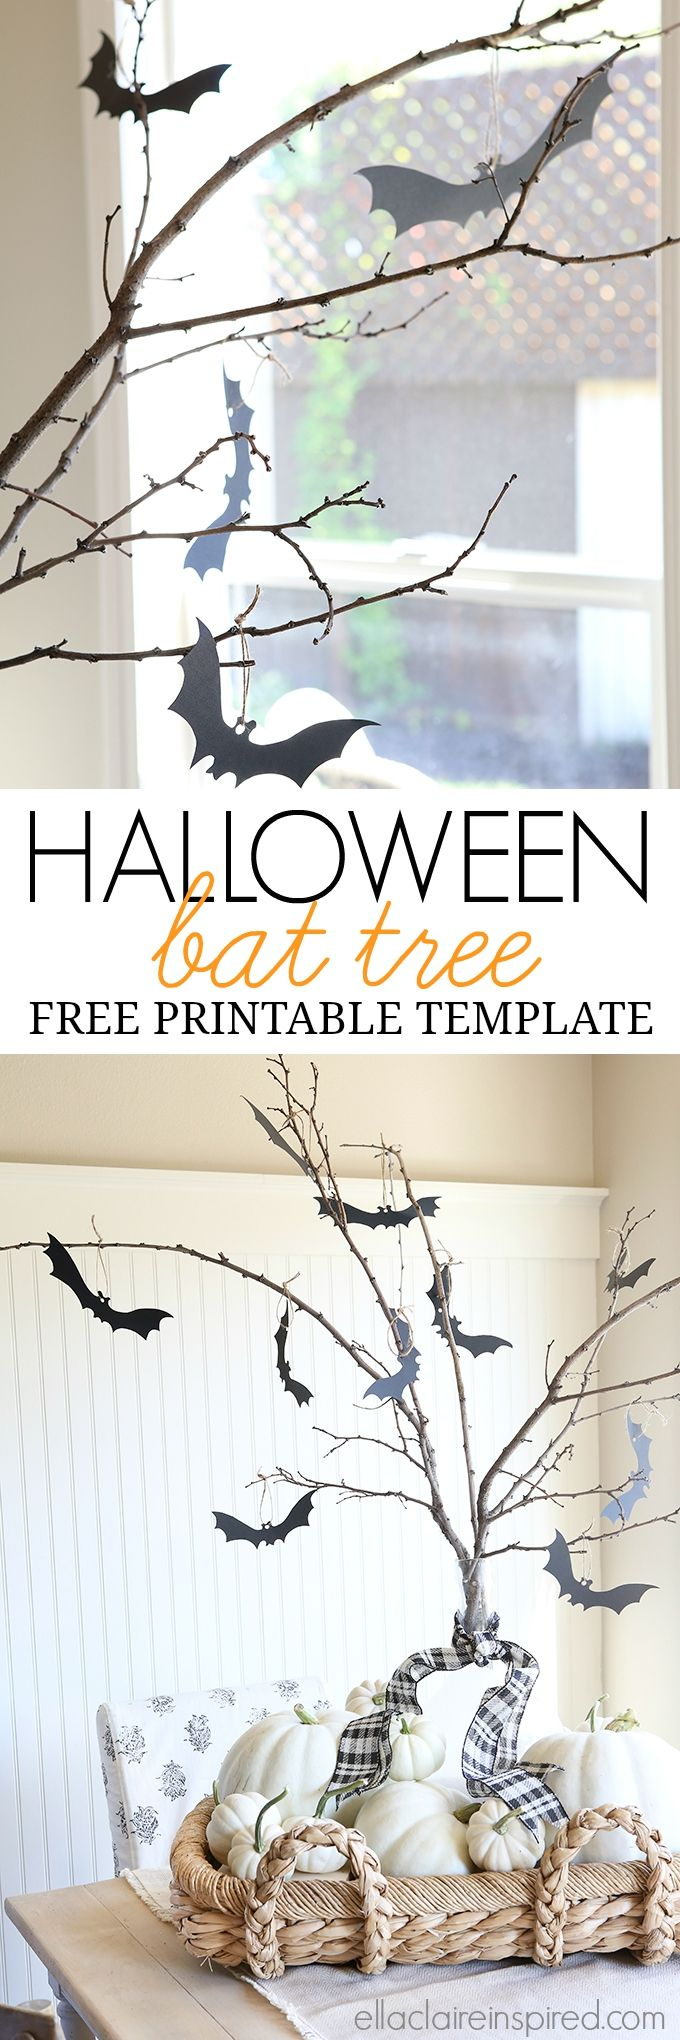 Make this adorable Spooky Halloween Bat Tree using this tutorial with free printable bat templates! Perfect thing to do with kids!